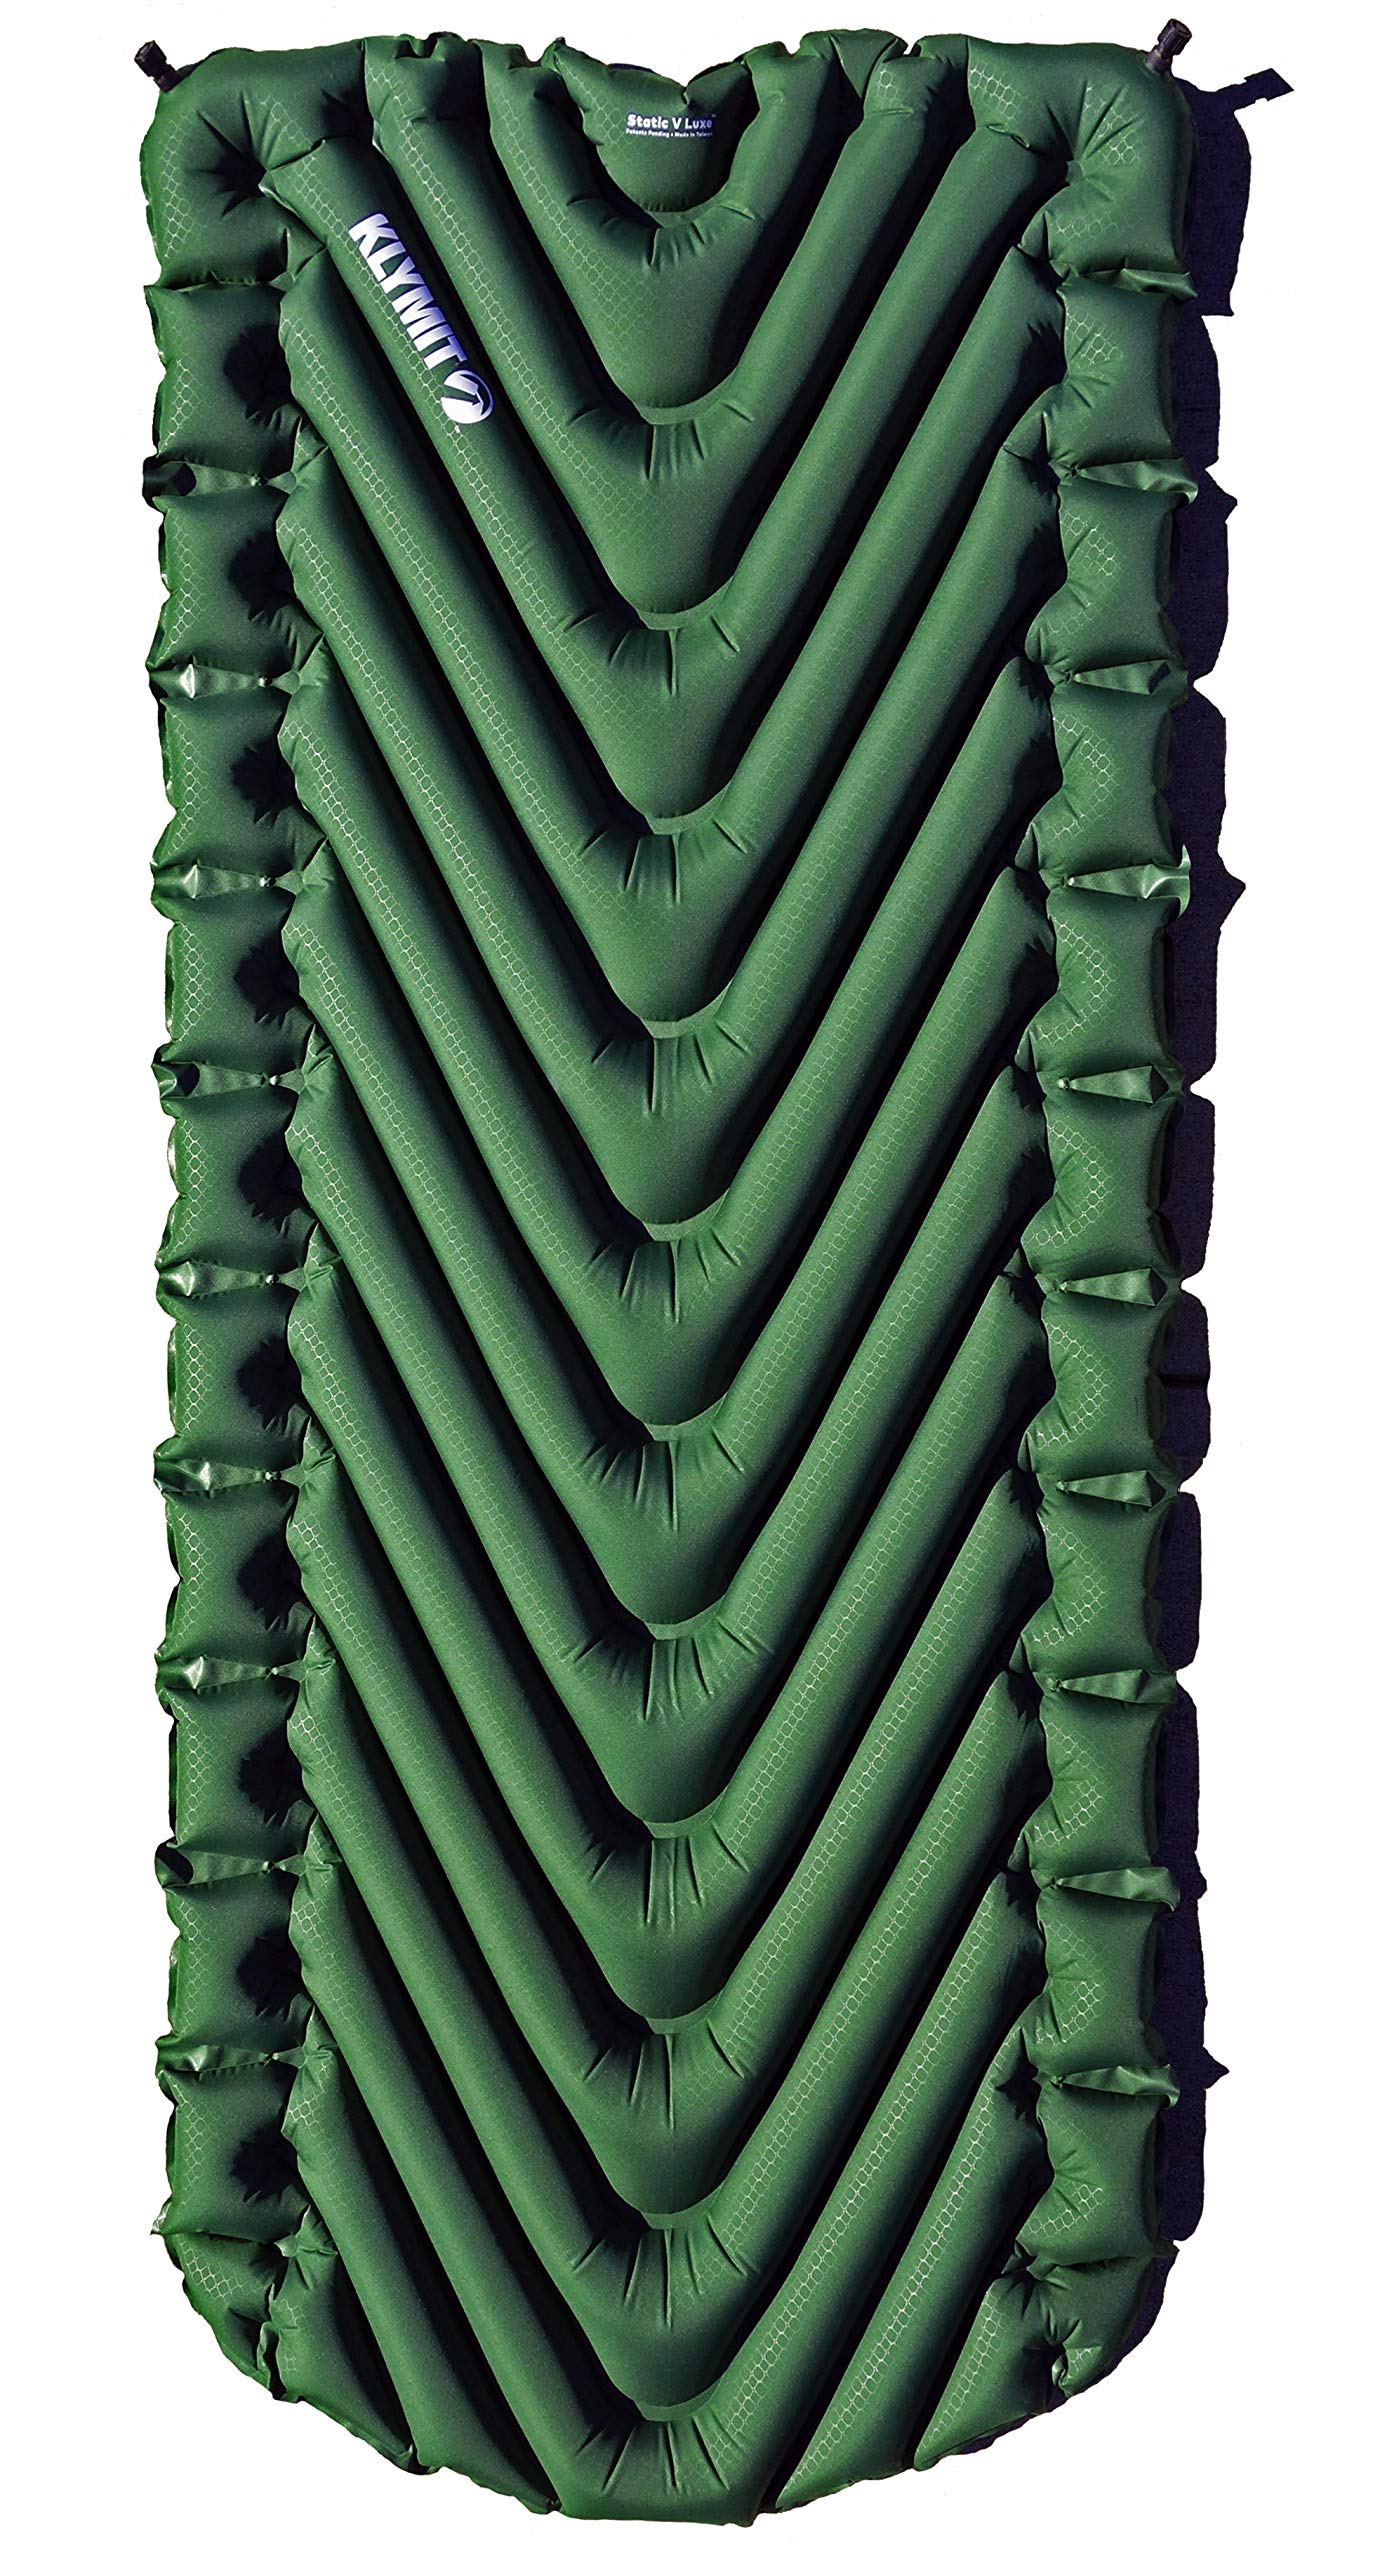 Klymit Static V Luxe Sleeping Pad for Camping, Hiking, and Backpacking (Moss Green) by Klymit